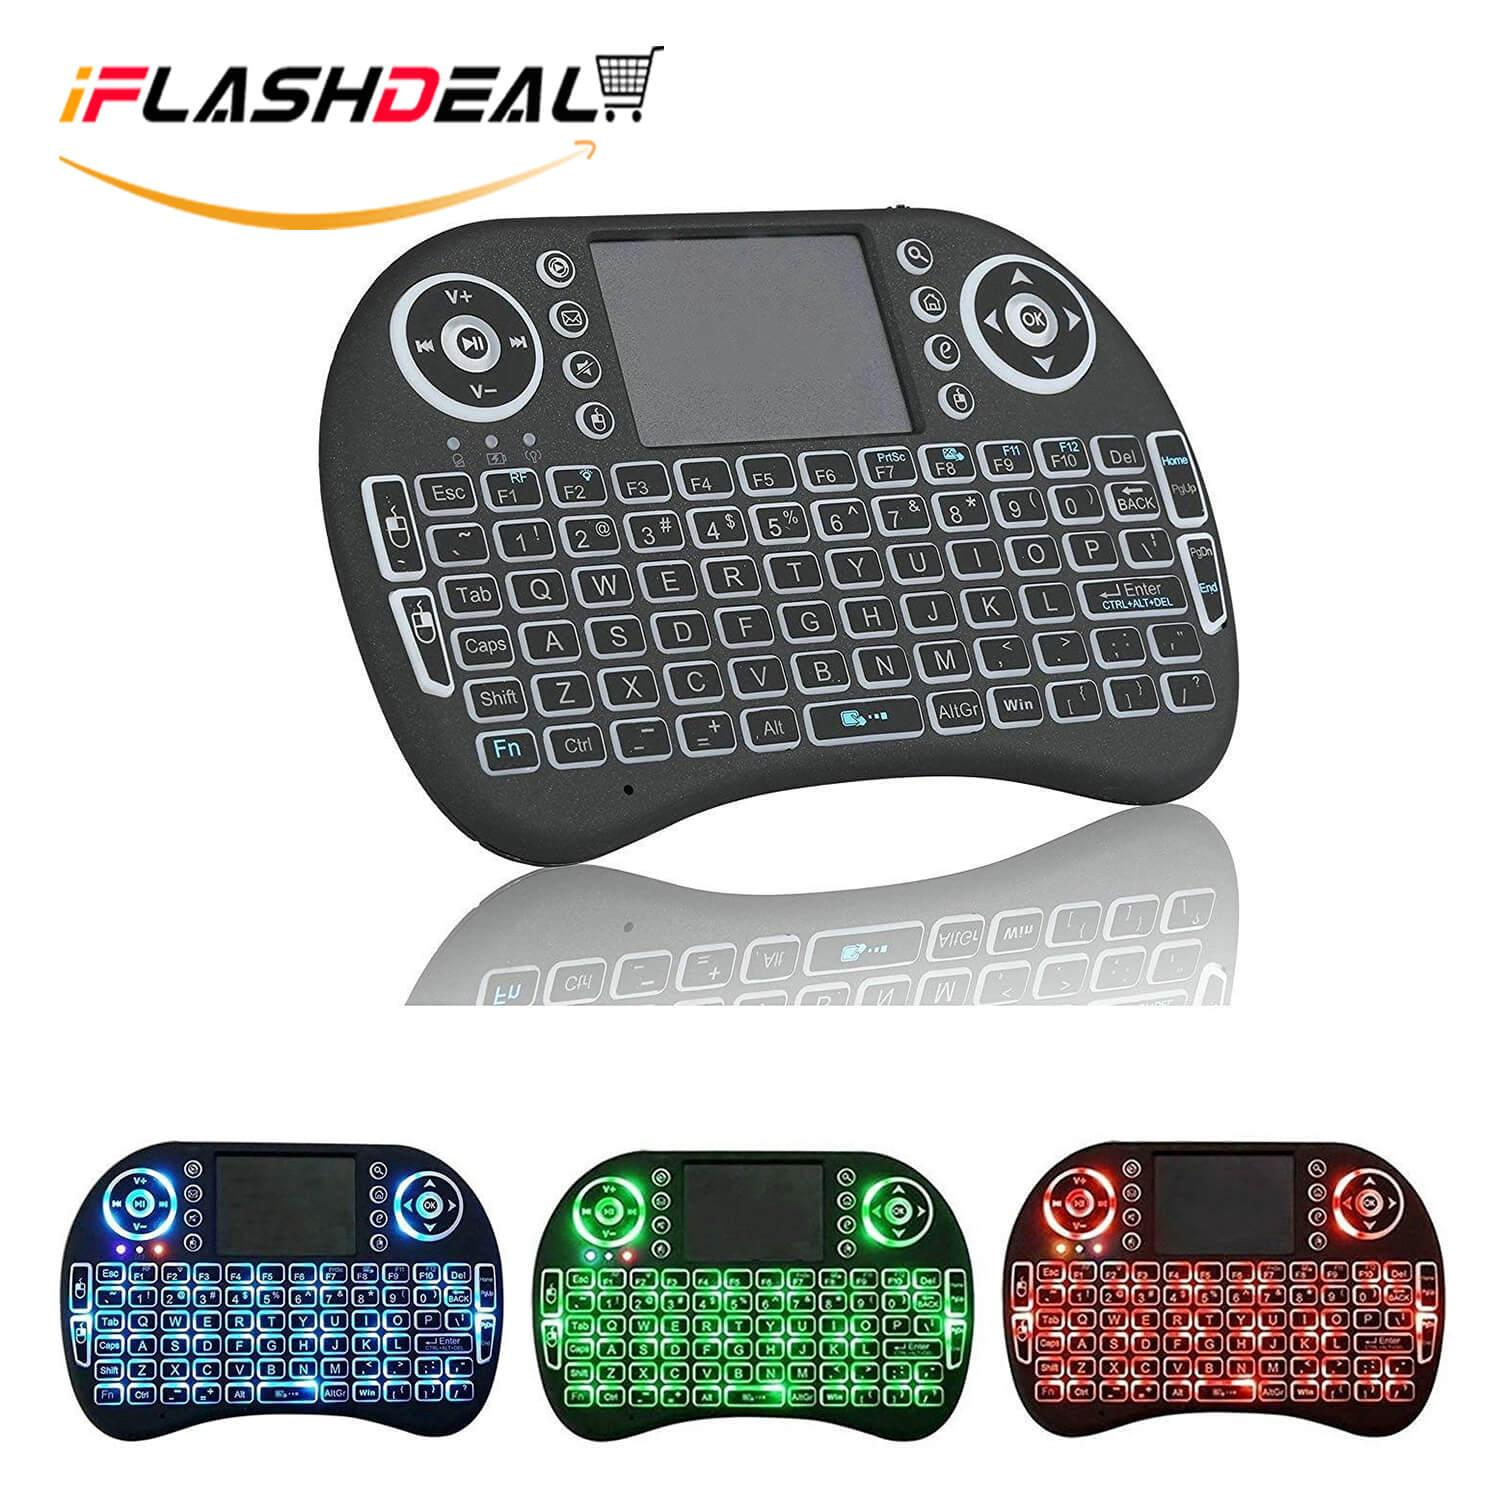 iFlashDeal Mini 2.4 GHz Wireless Keyboard Backlit illuminated Wireless Mouse Combo with Touchpad LED Remote Rechargeable Li-Ion Battery, for PC Windows XP Vista 7 8 10 Malaysia